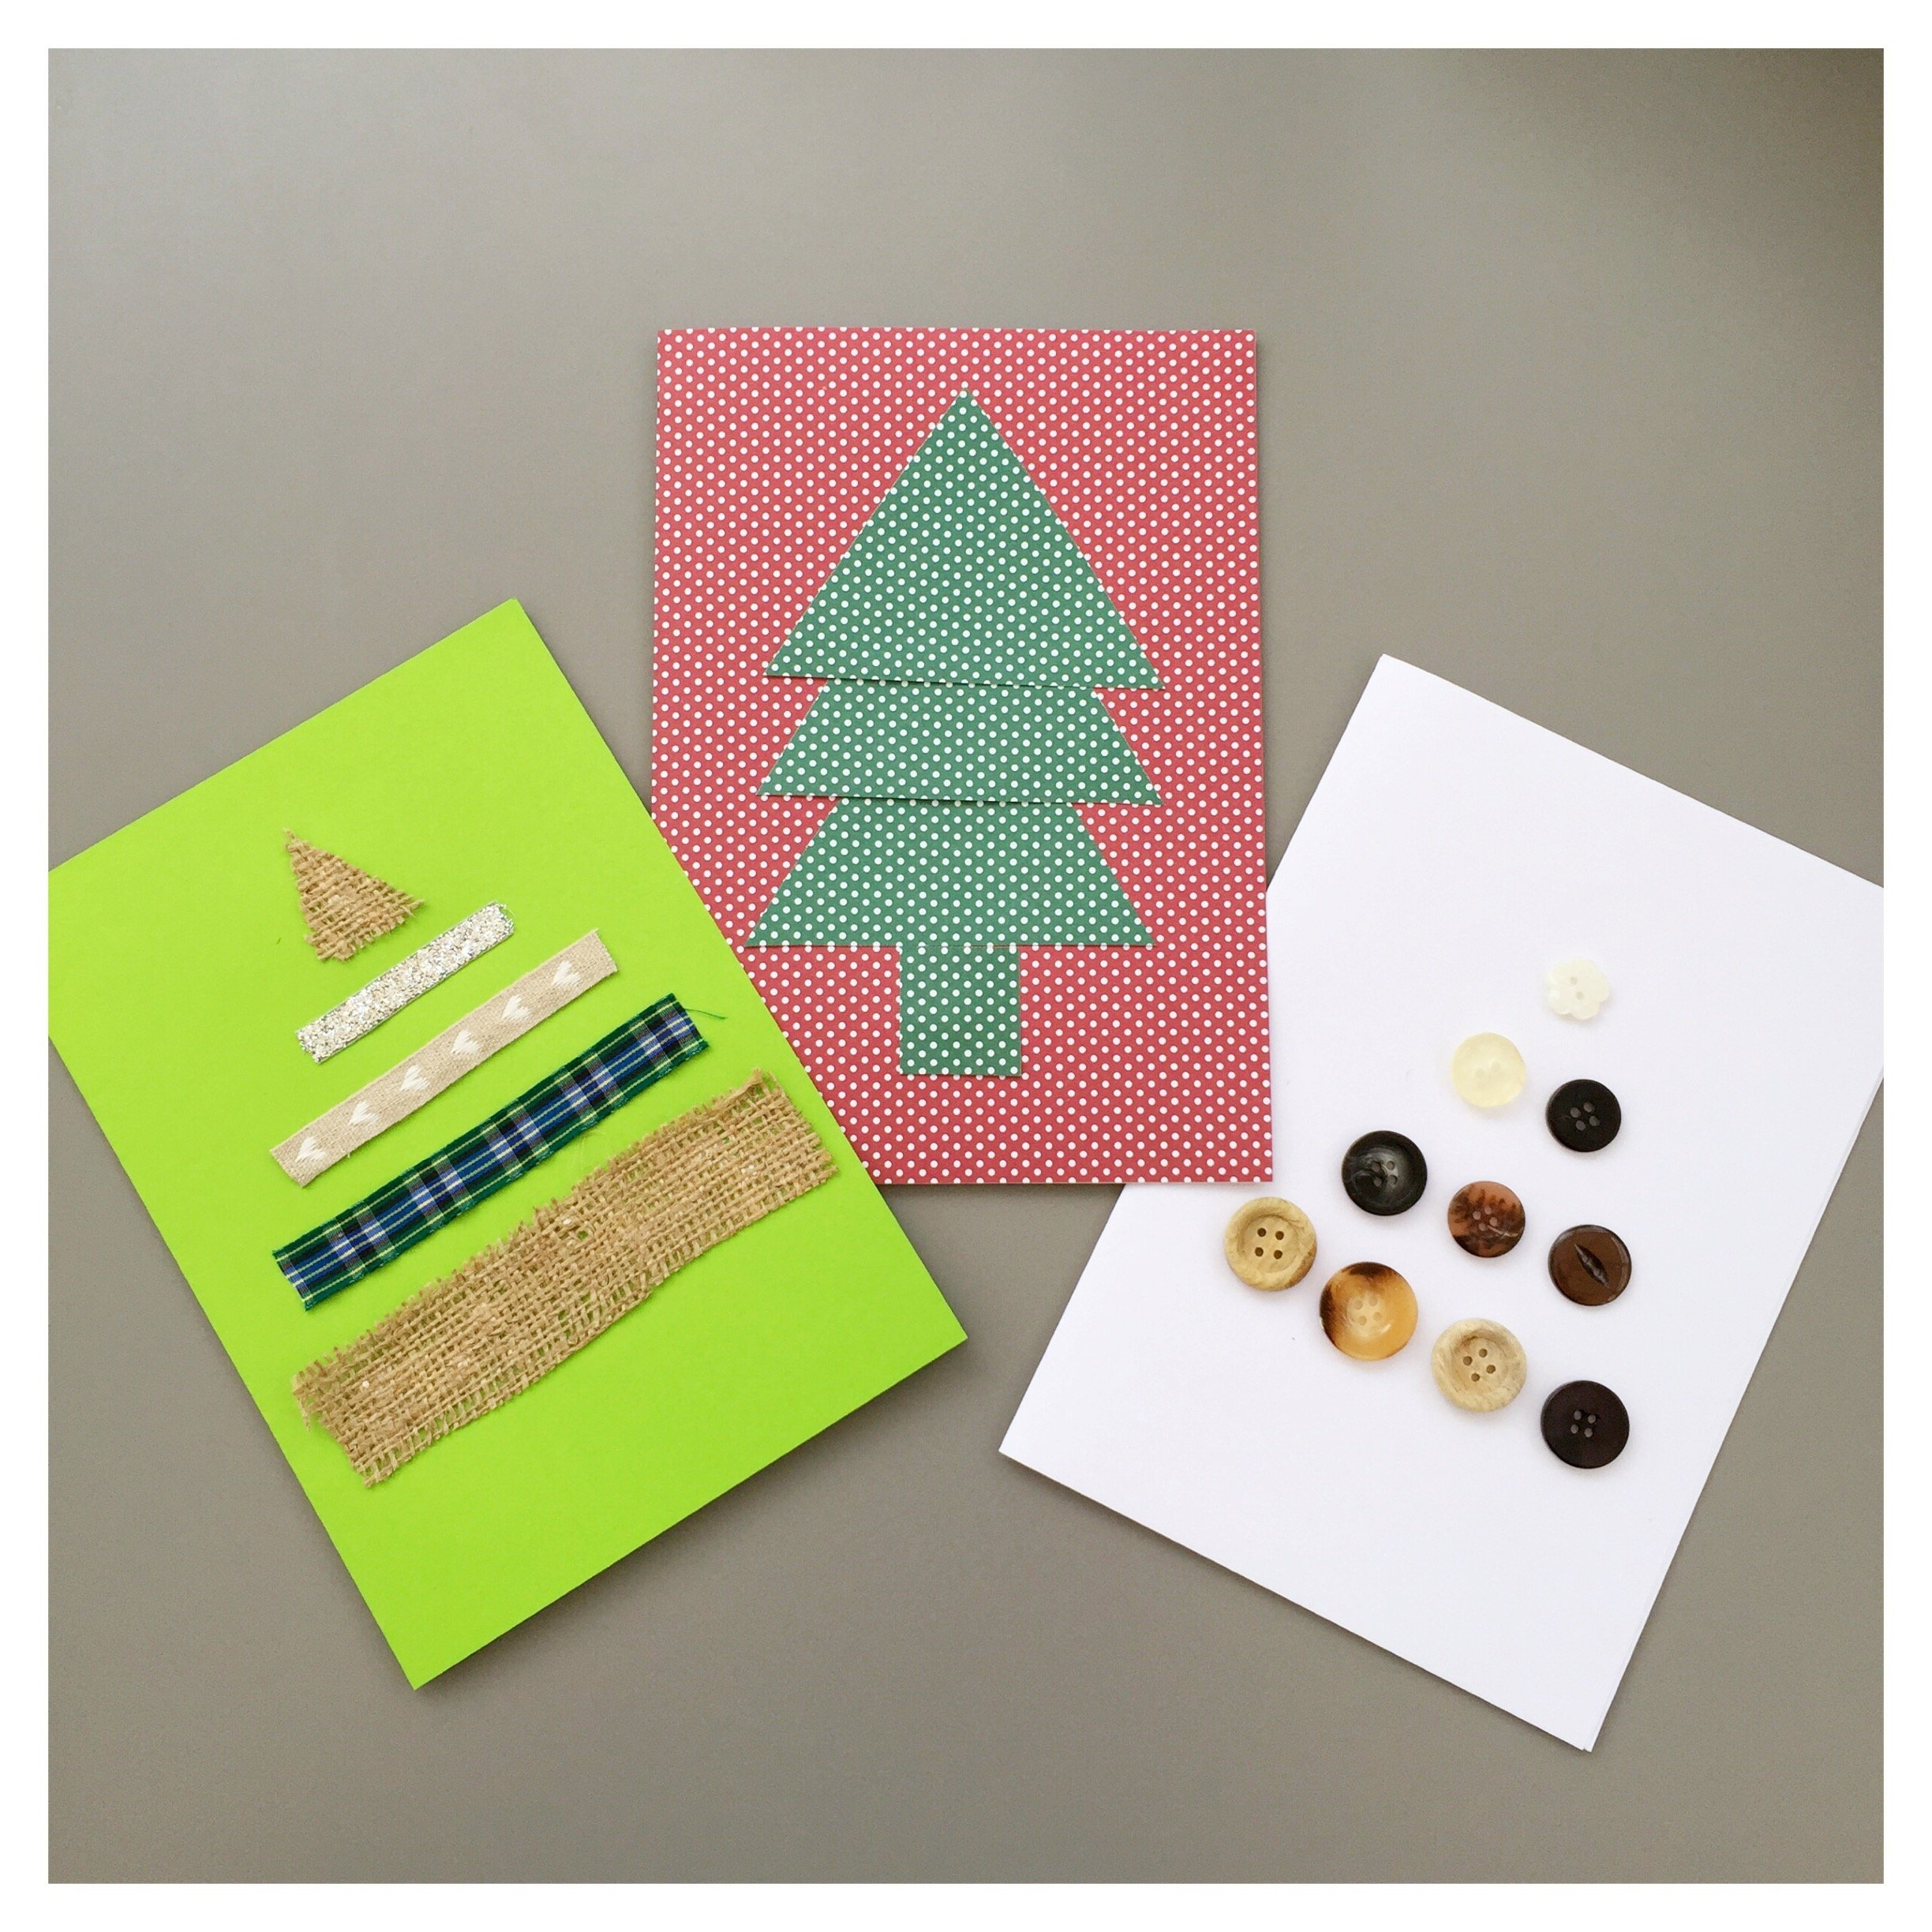 easy homemade christmas cards kids have made in shop of Christmas tree one made from buttons, one from ribbons and one from spotted paper